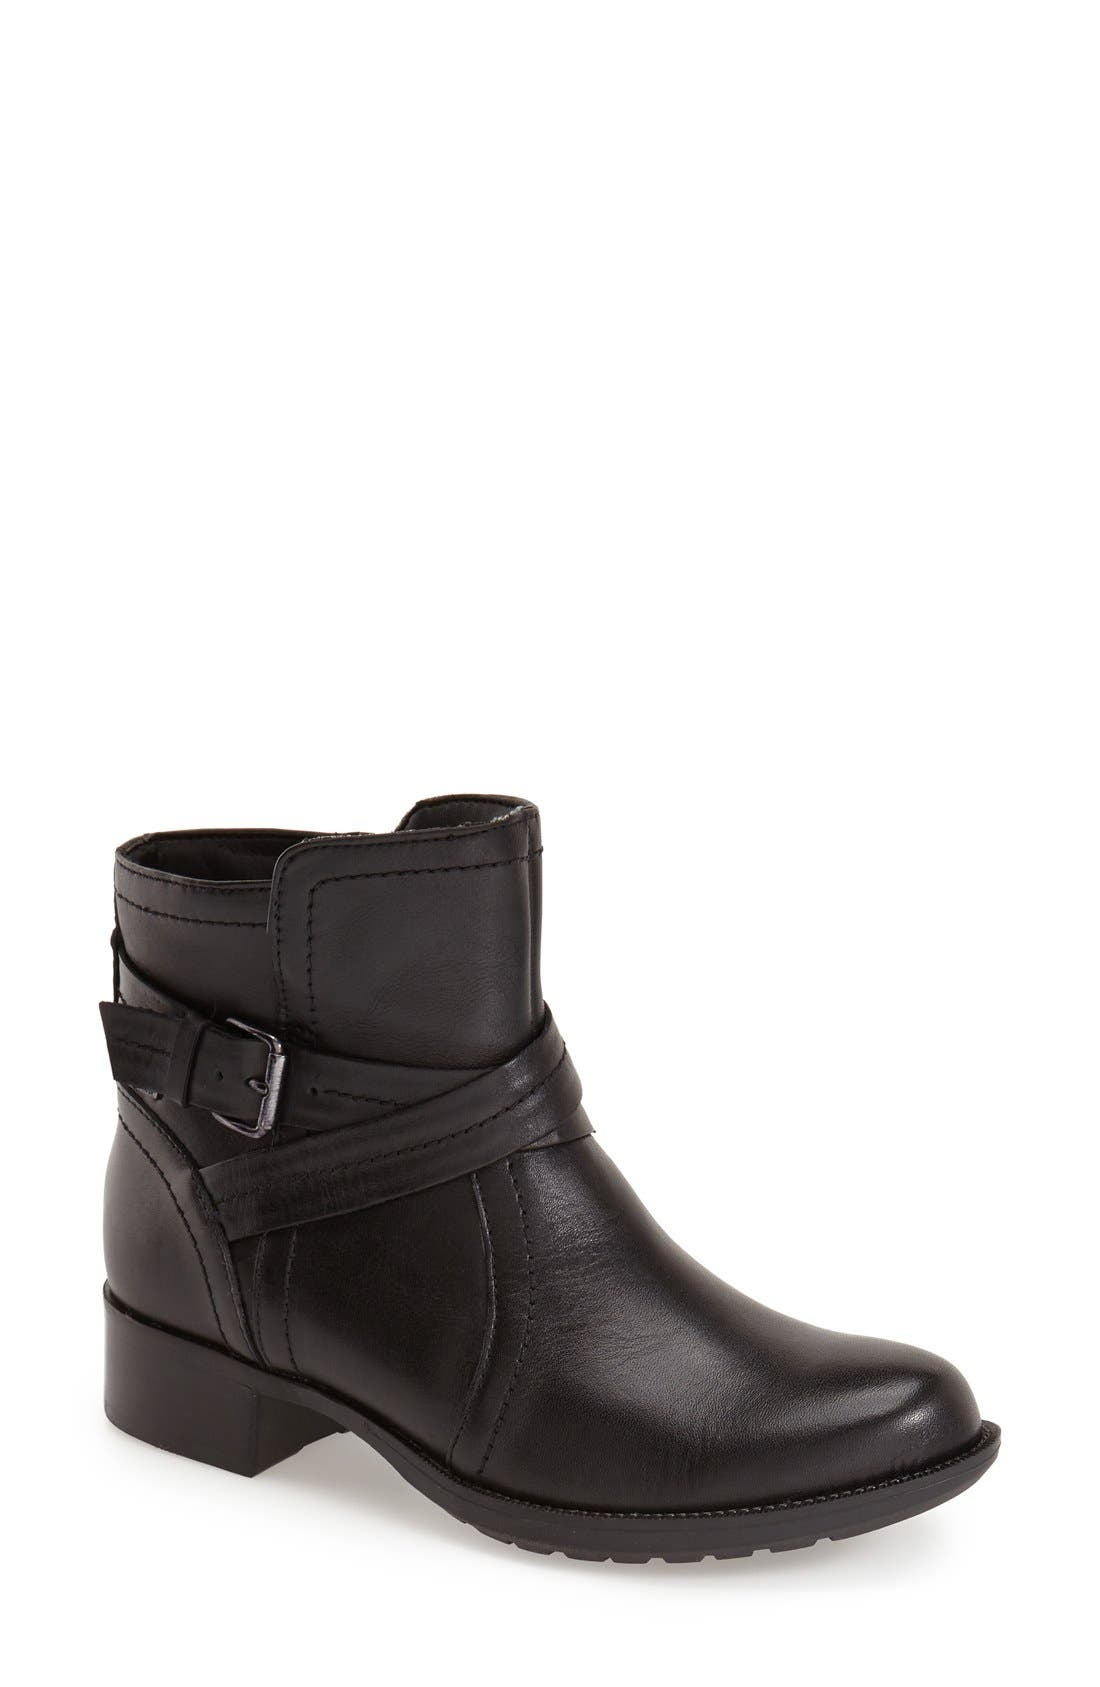 Caroline Waterproof Boot,                             Main thumbnail 1, color,                             BLACK LEATHER